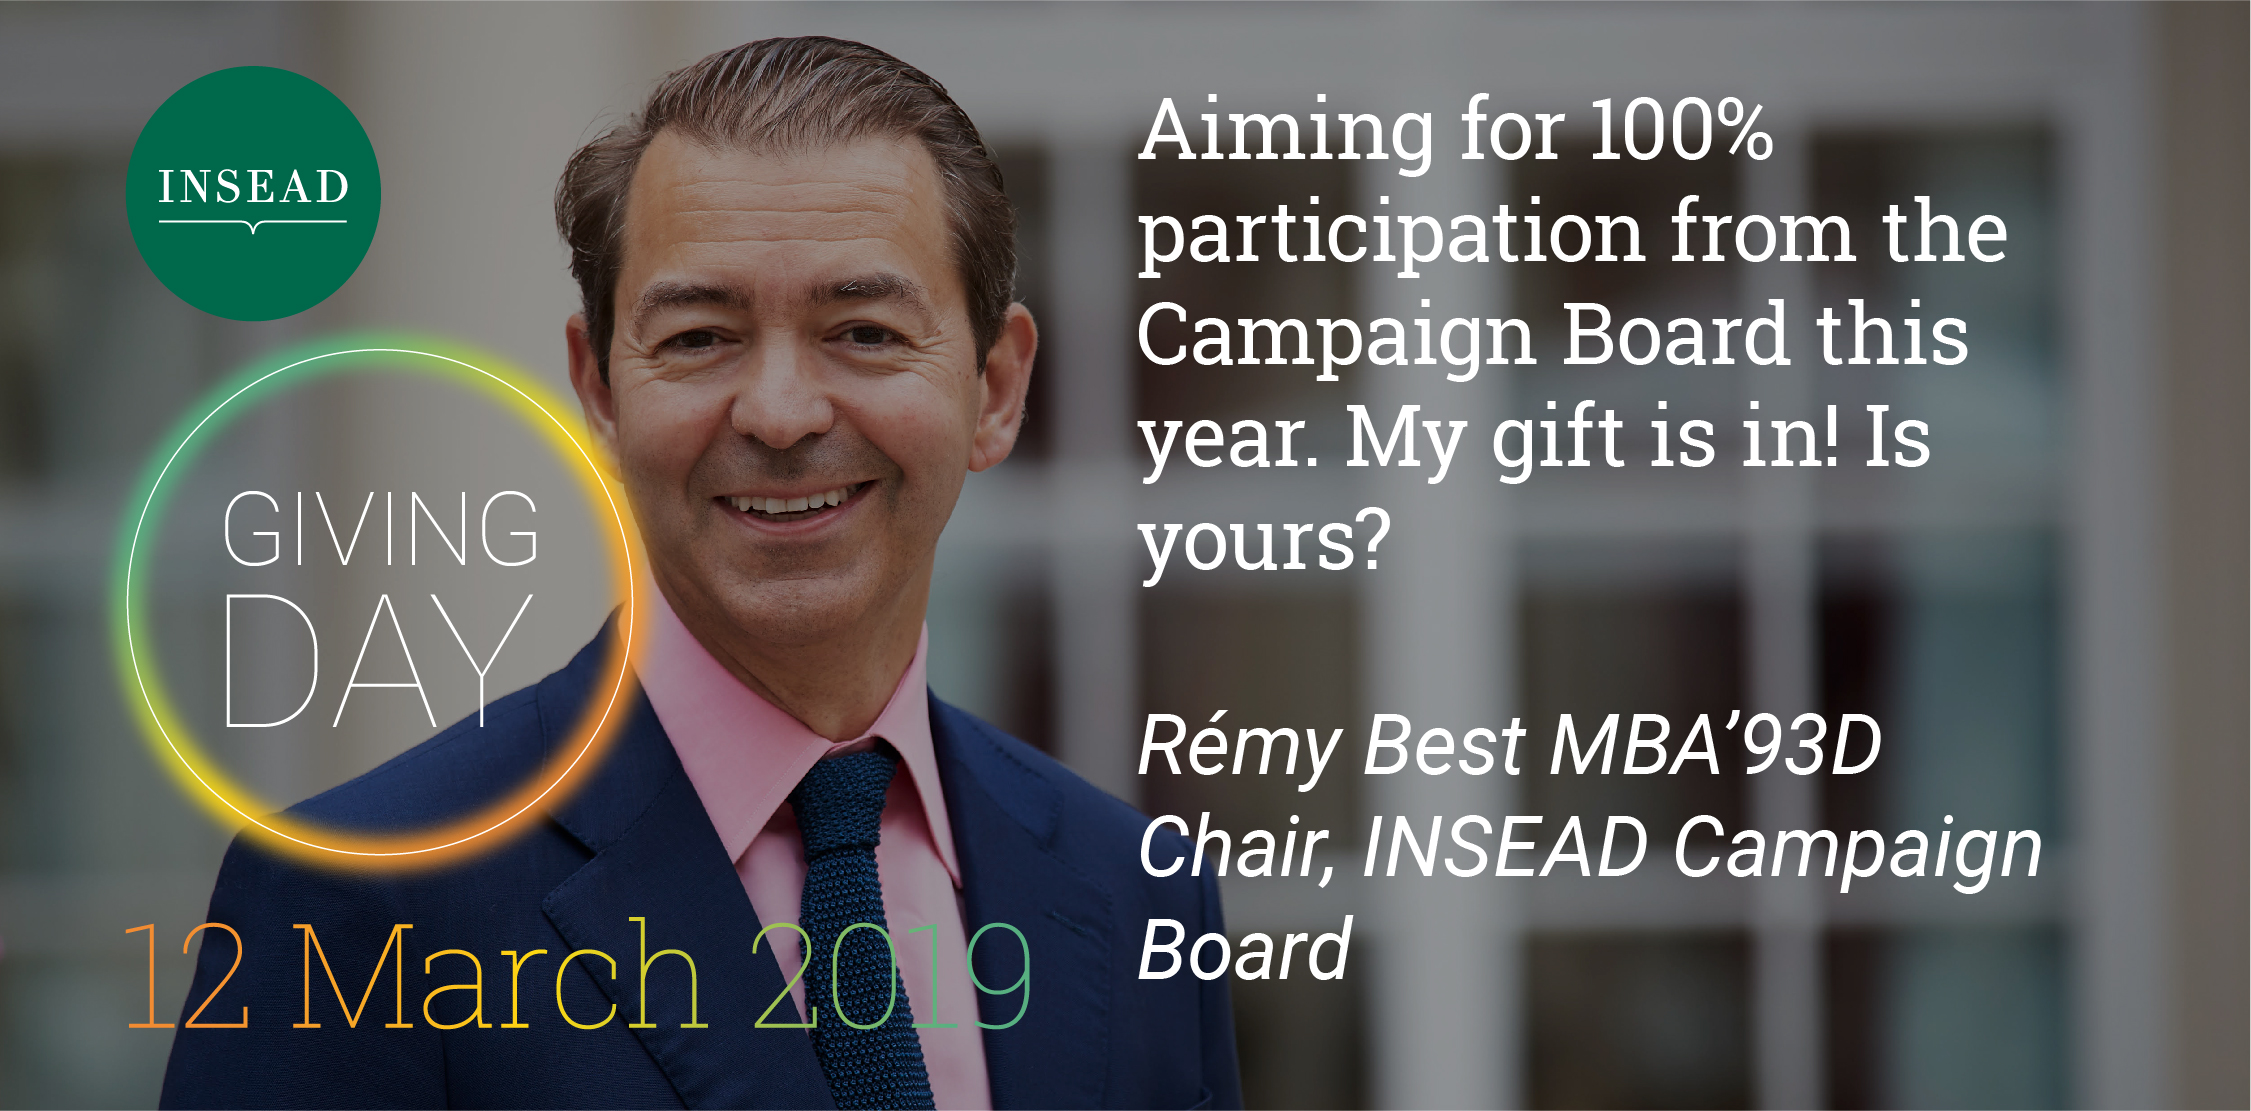 """Remy Best, Chair of INSEAD Campaign Board. Text reads """"Aiming for 100% participation from the Campaign Board this year. My gift is in! Is yours?""""."""